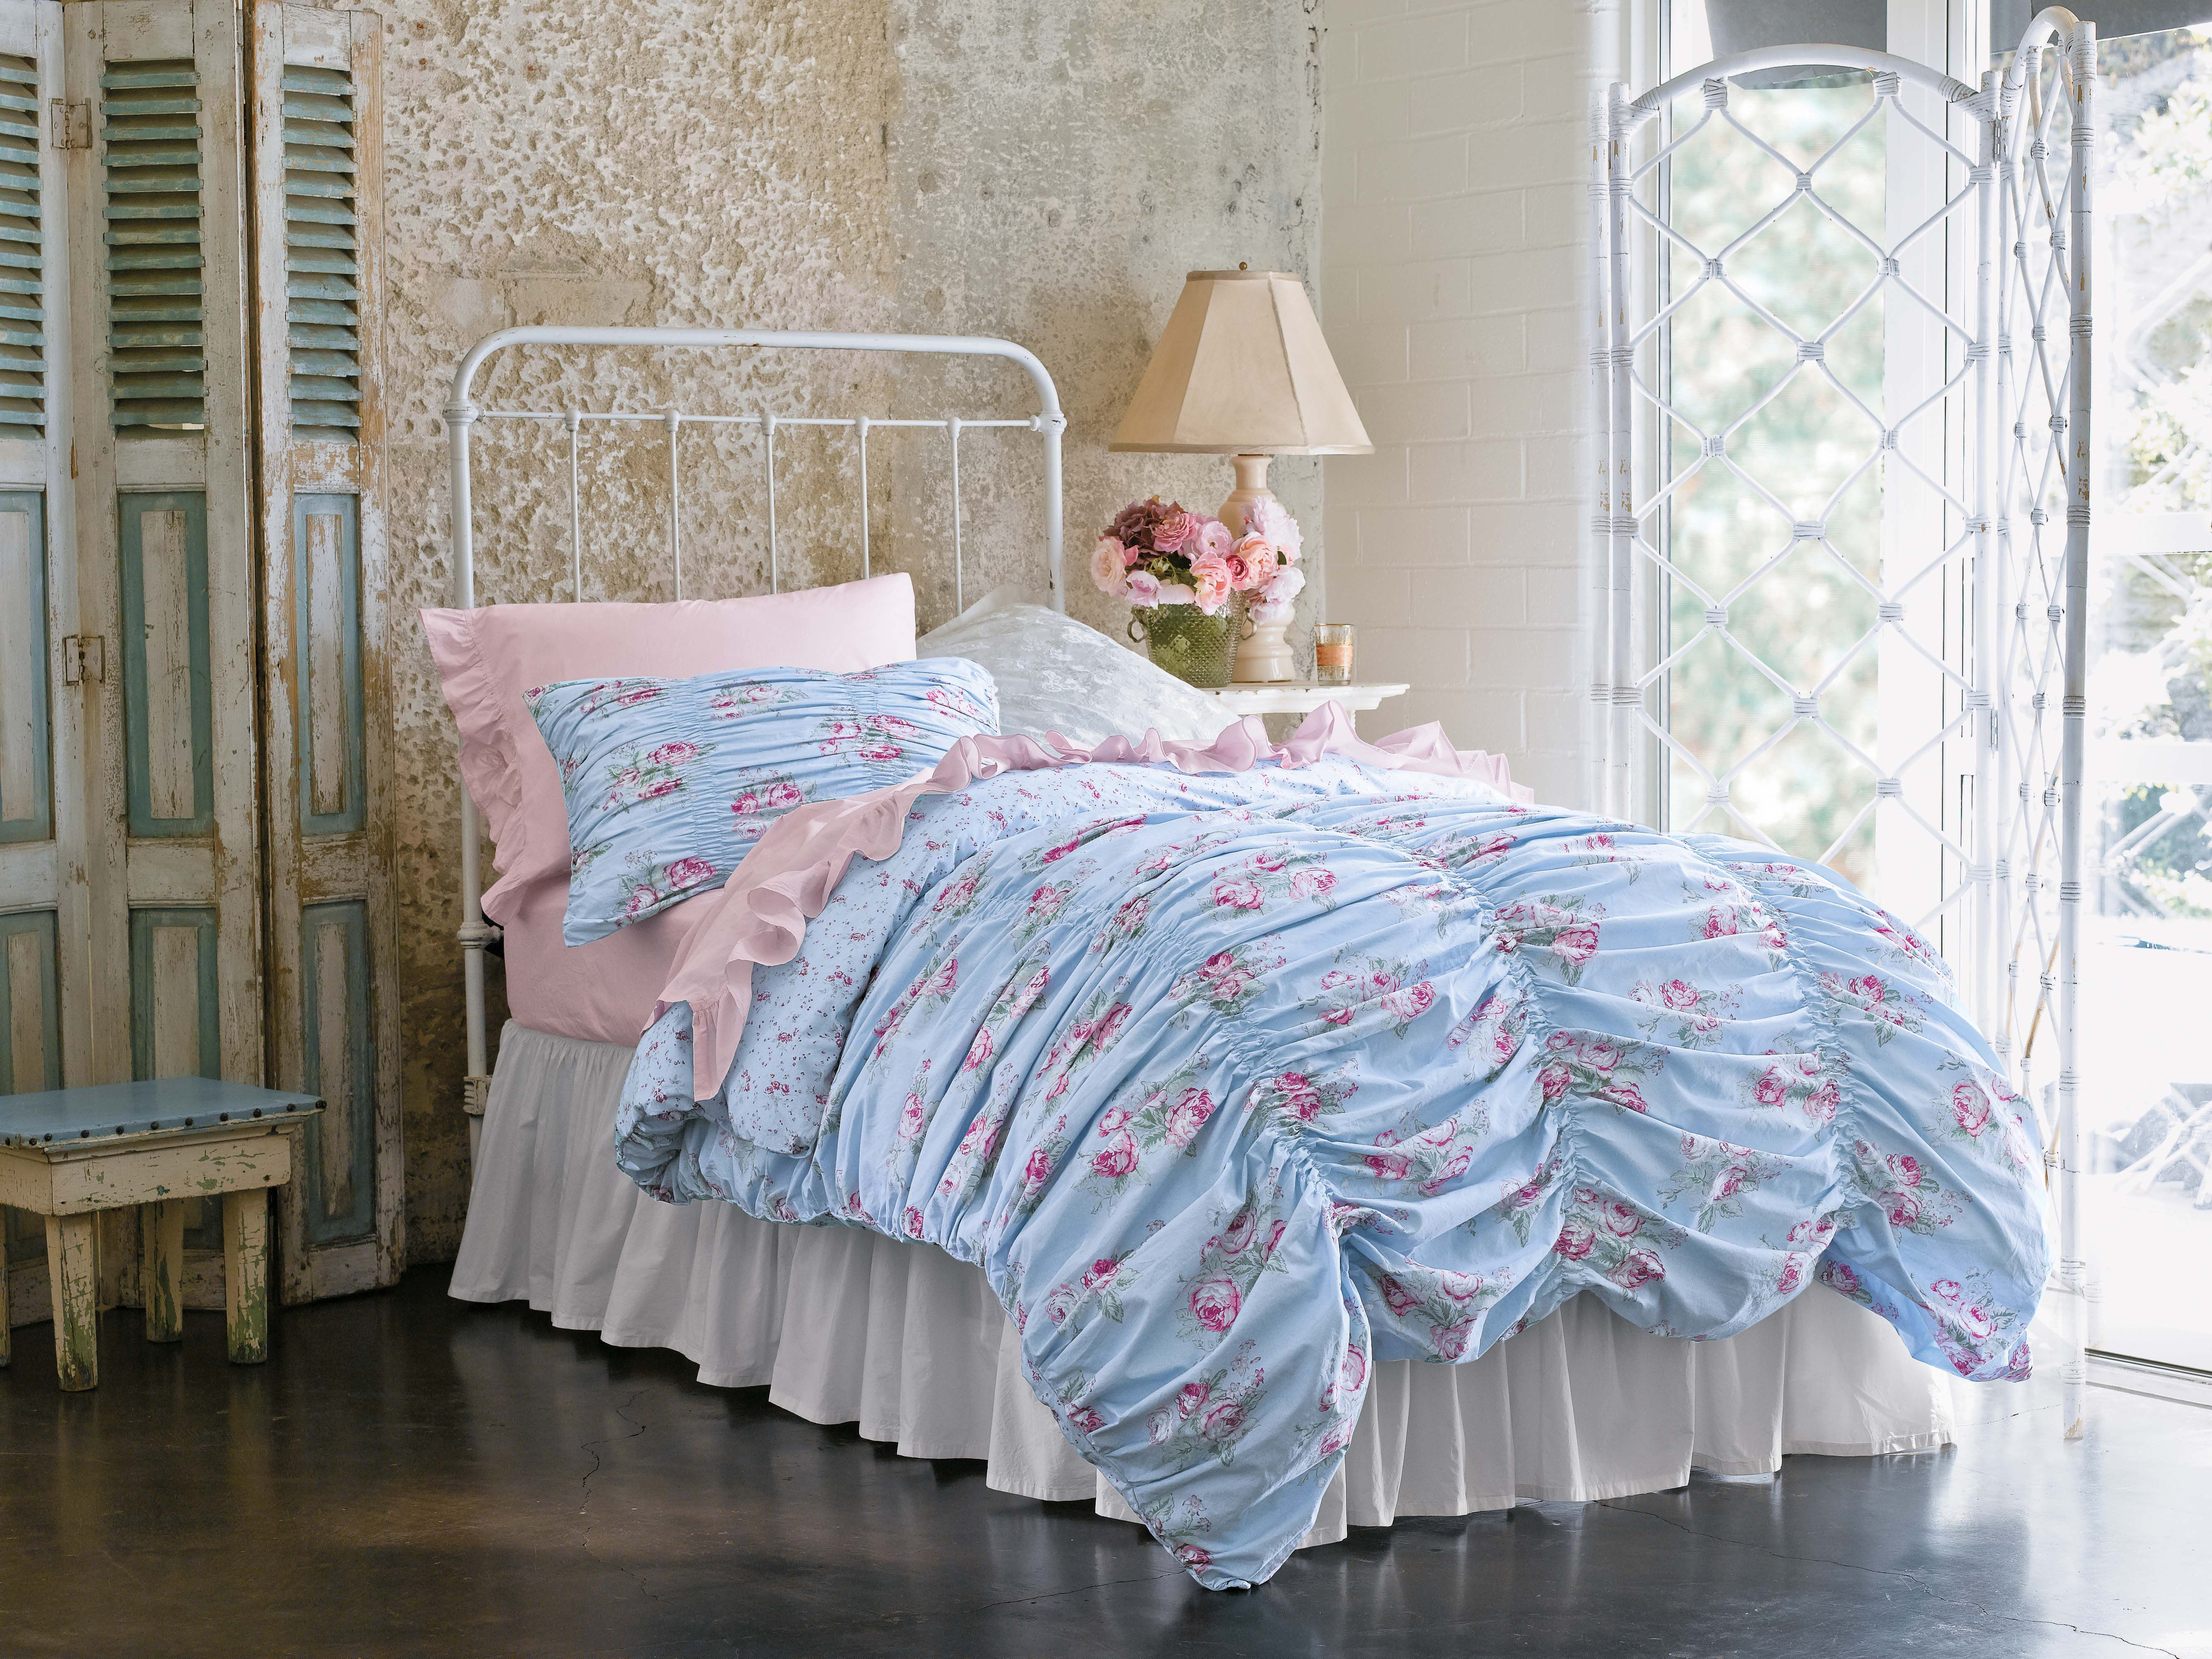 Target Queen Quilt Cover Simply Shabby Chic Cabbage Rose Rouged Duvet Set 79 99